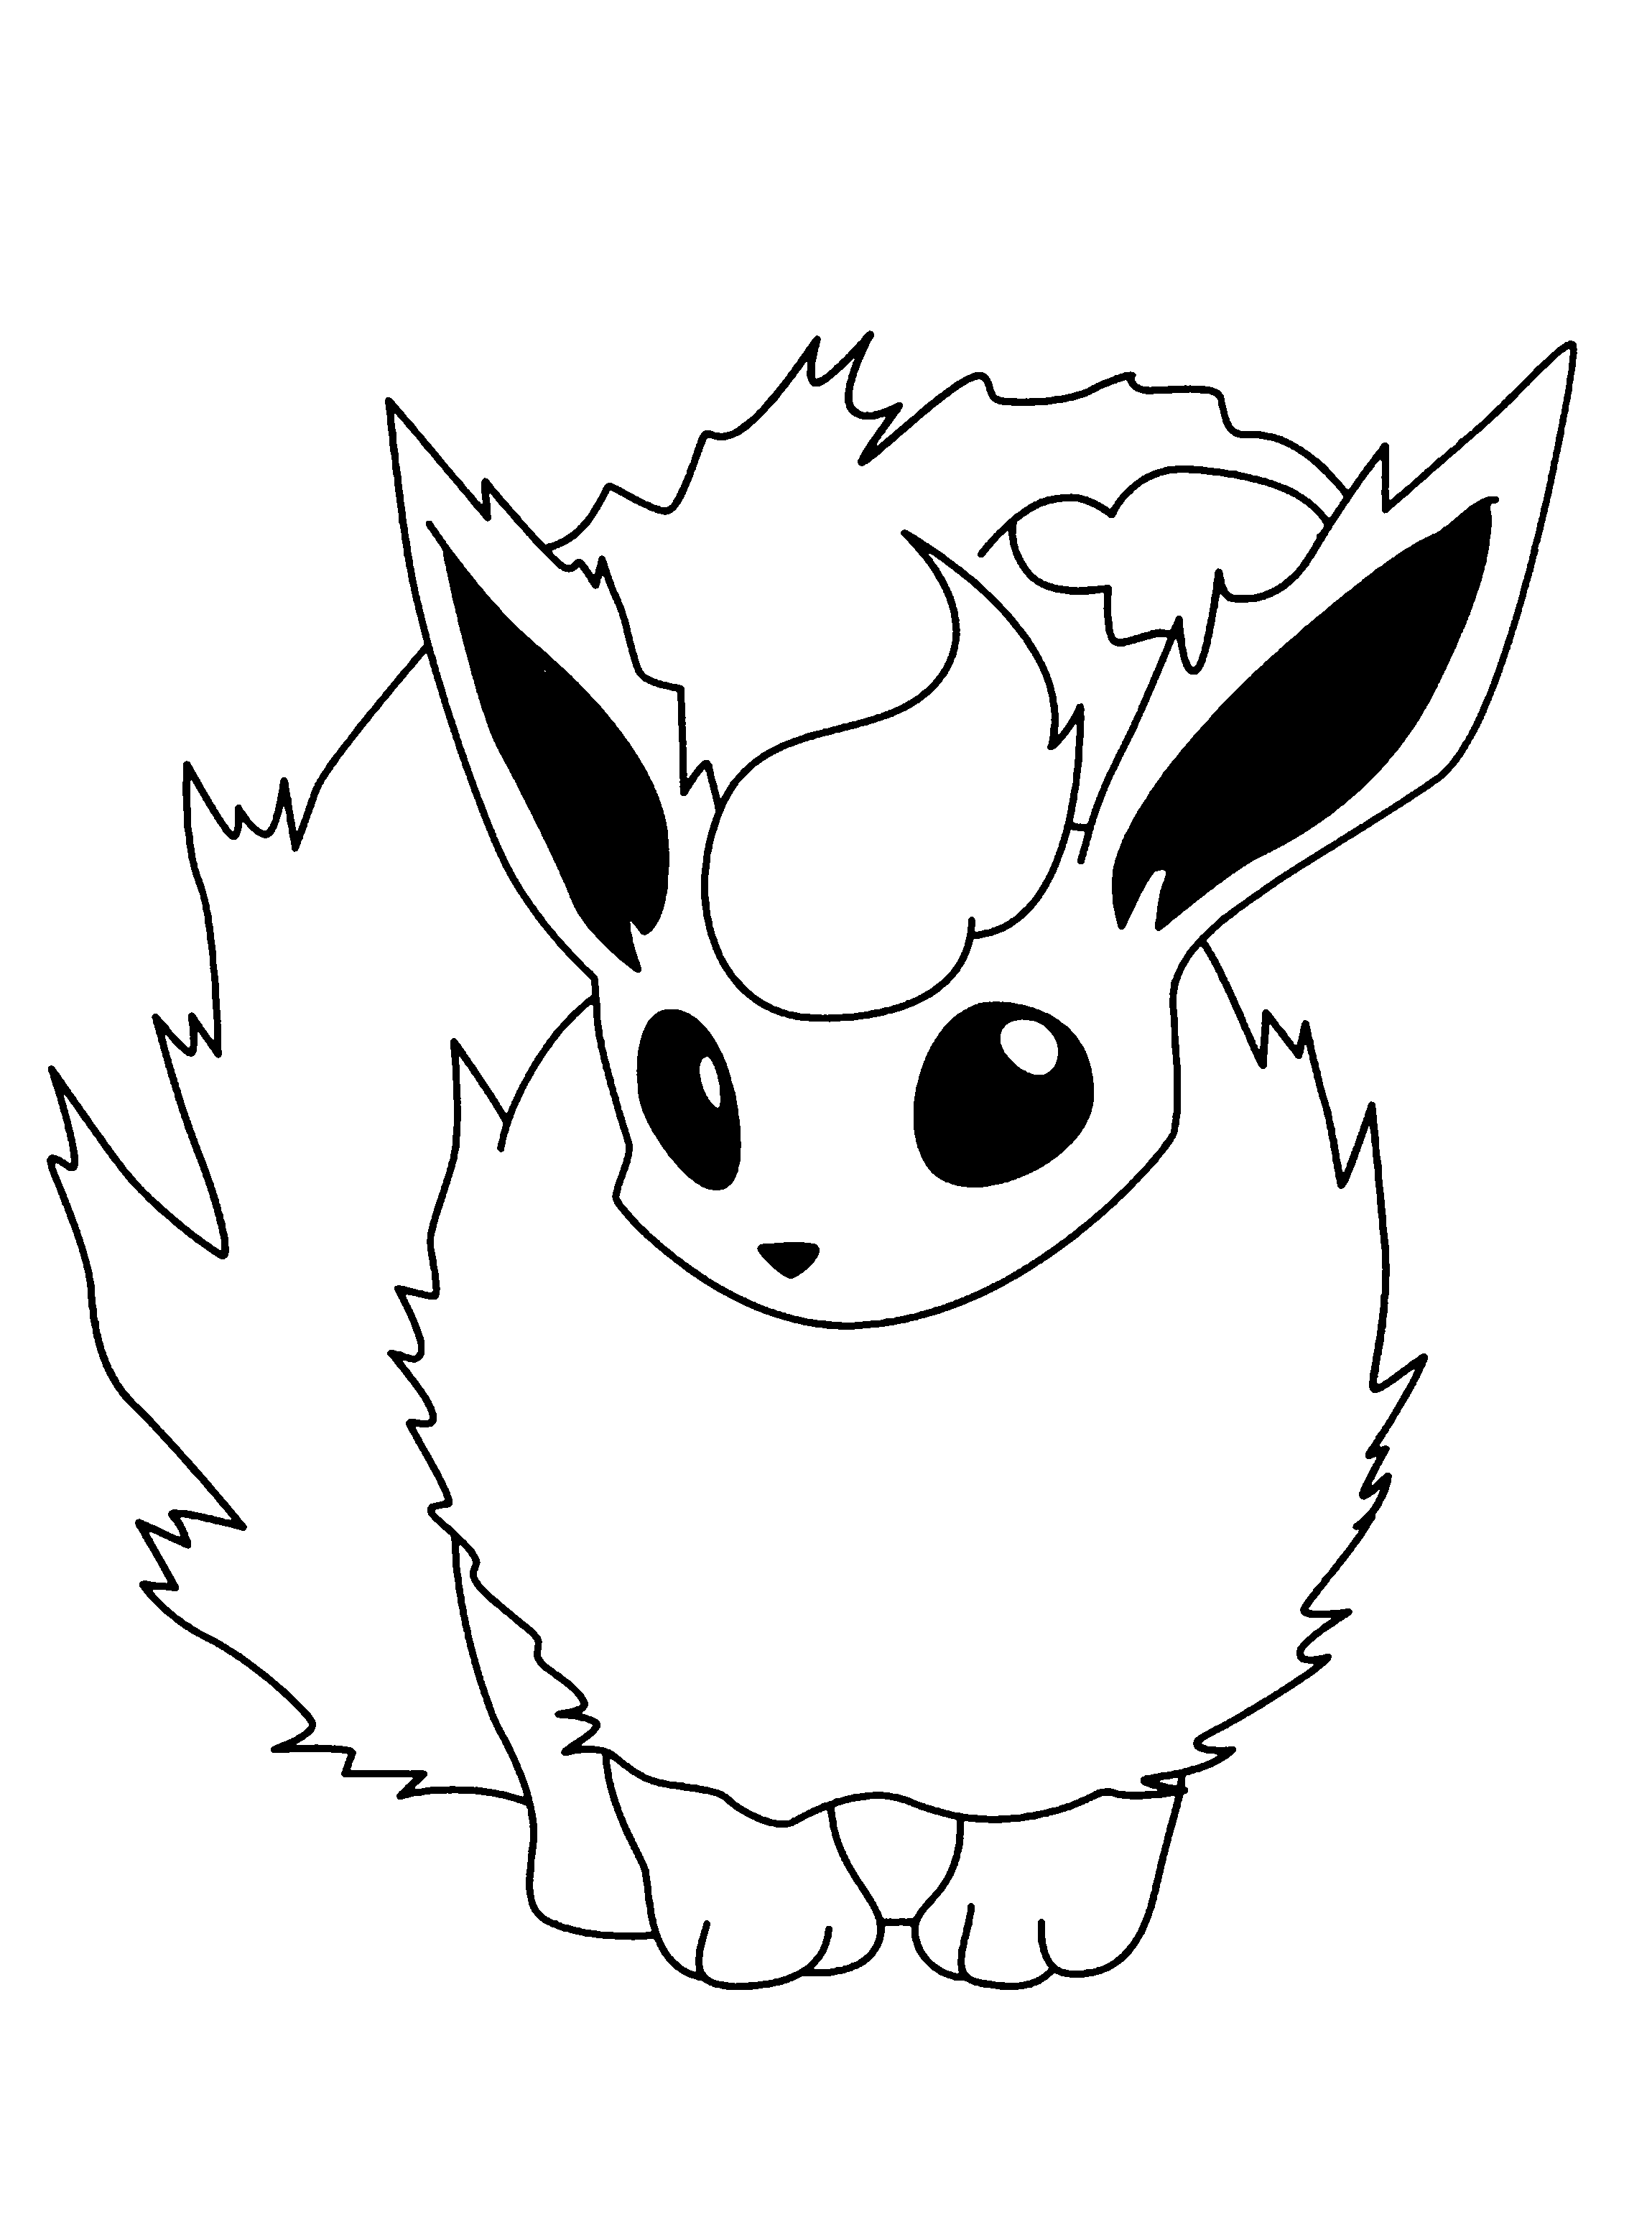 pictures of pokemon coloring pages pokemon coloring pages join your favorite pokemon on an pokemon pages coloring pictures of